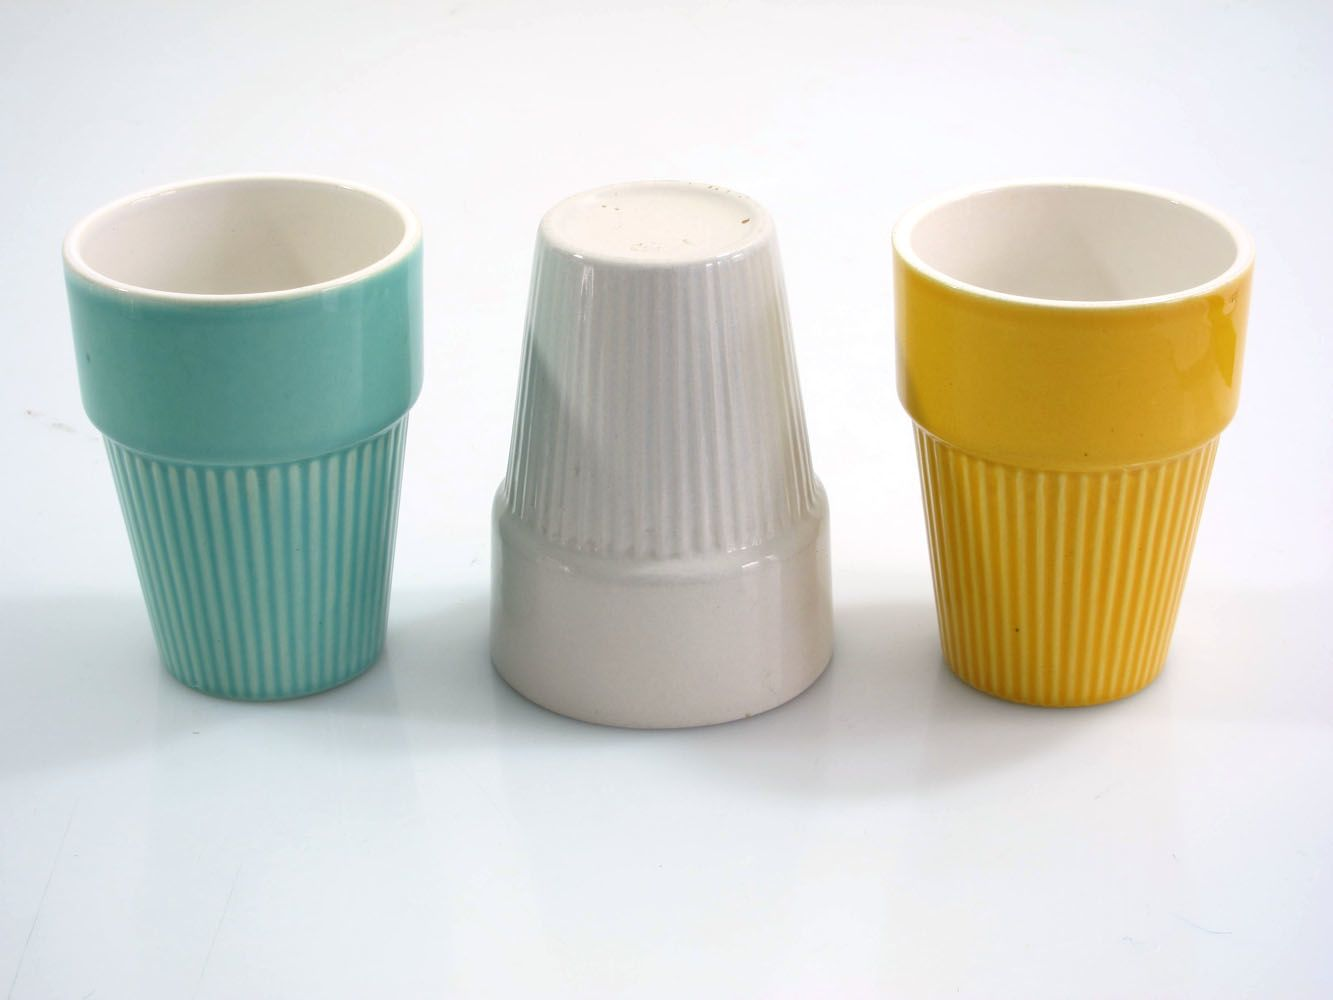 Nice set of vintage ceramic cups. Grey one has a slight manufacter error. See cup edge on picture. Dimensions: height 10 cm, diameter 7,5 cm.